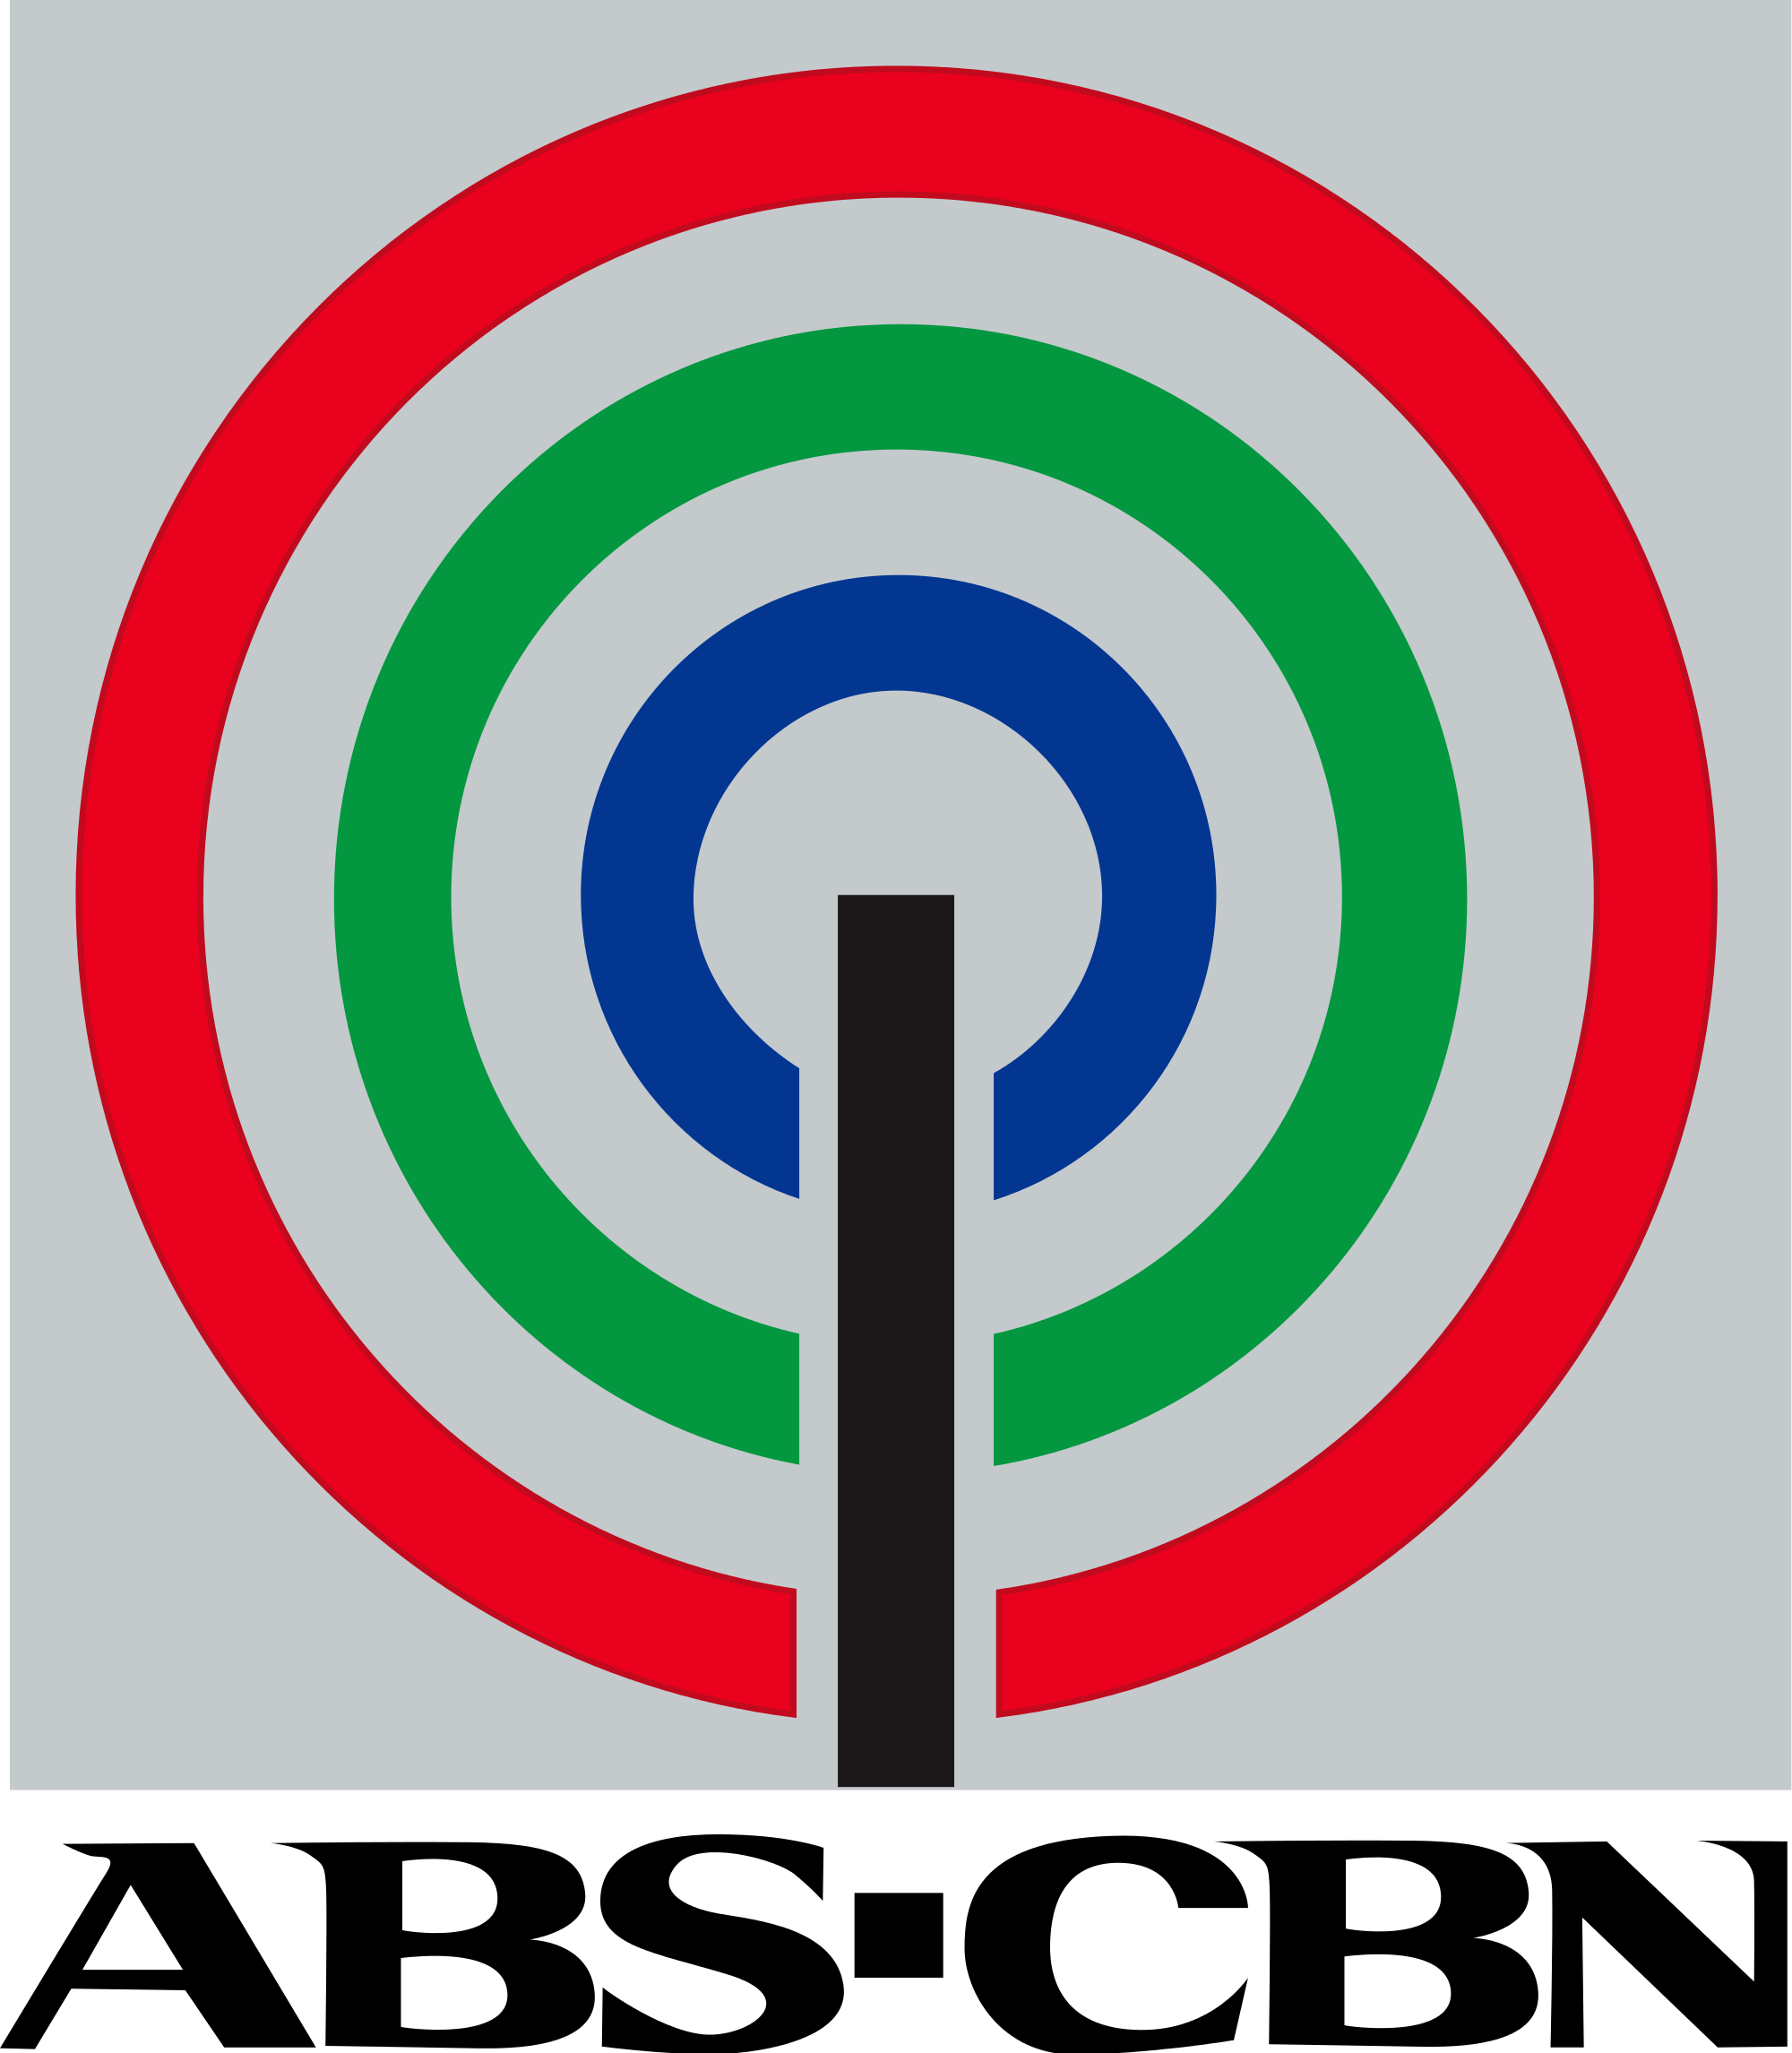 ABS-CBN_Logo_(2000-2014).png